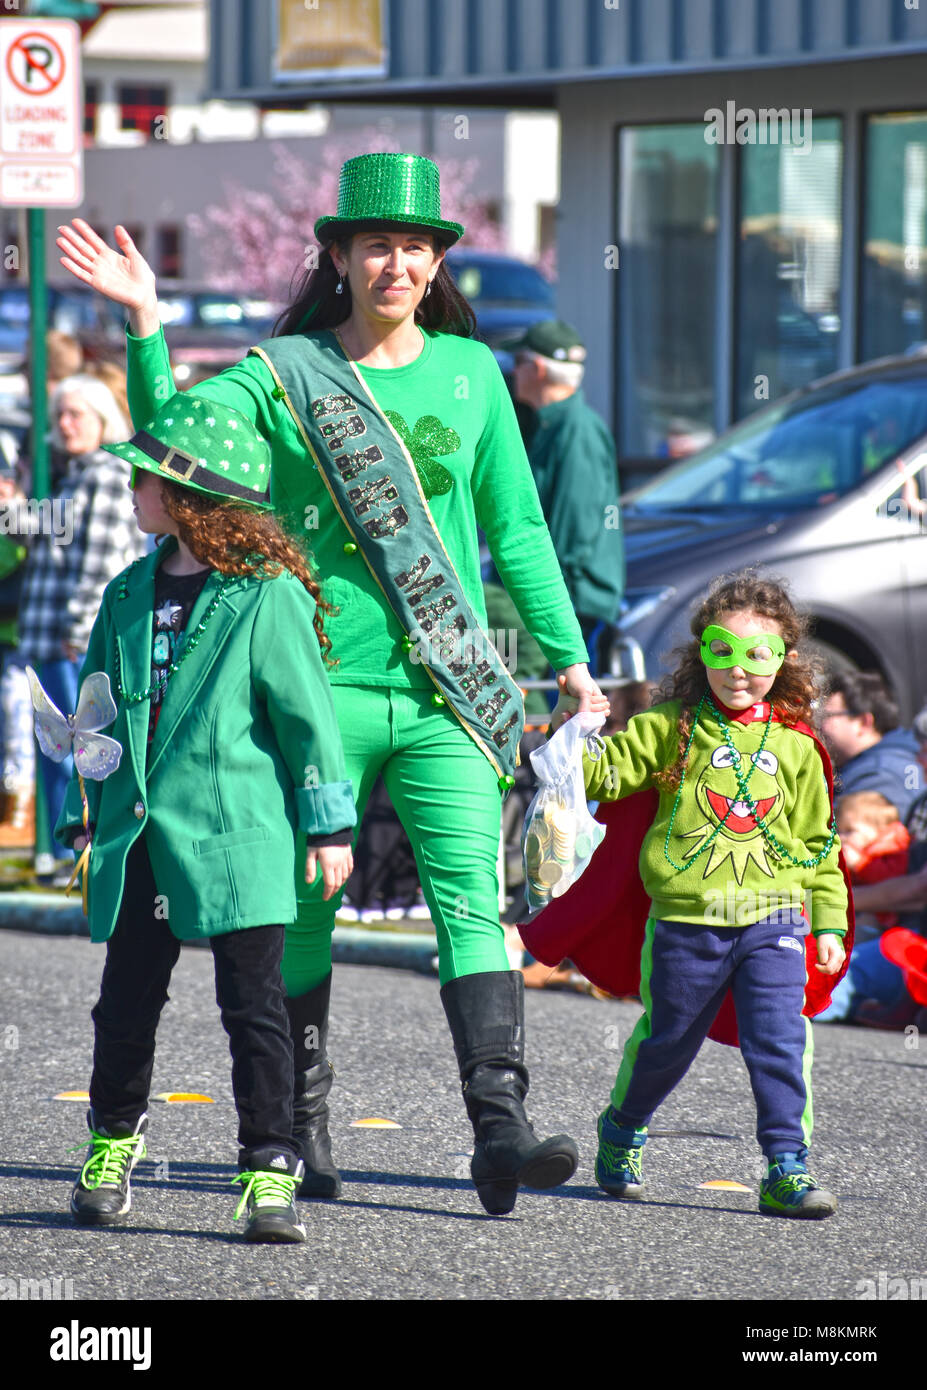 St. Patrick's Day Parade in Bellingham, Washington, USA.  The grand marshal is waving her hand at the crowd while Stock Photo